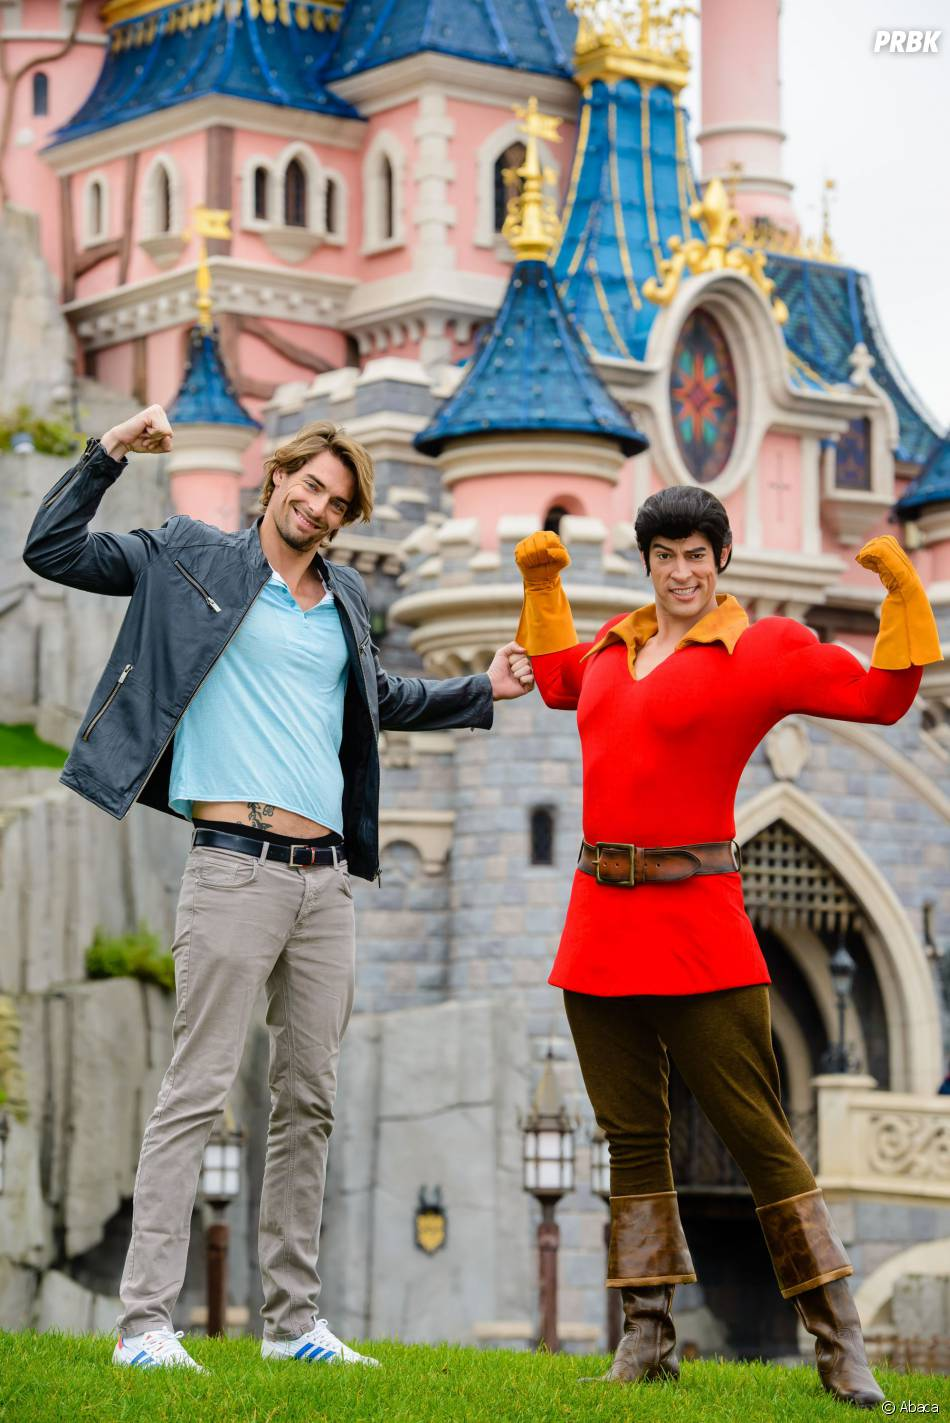 Camille Lacourt à Disneyland Paris, le 12 avril 2015